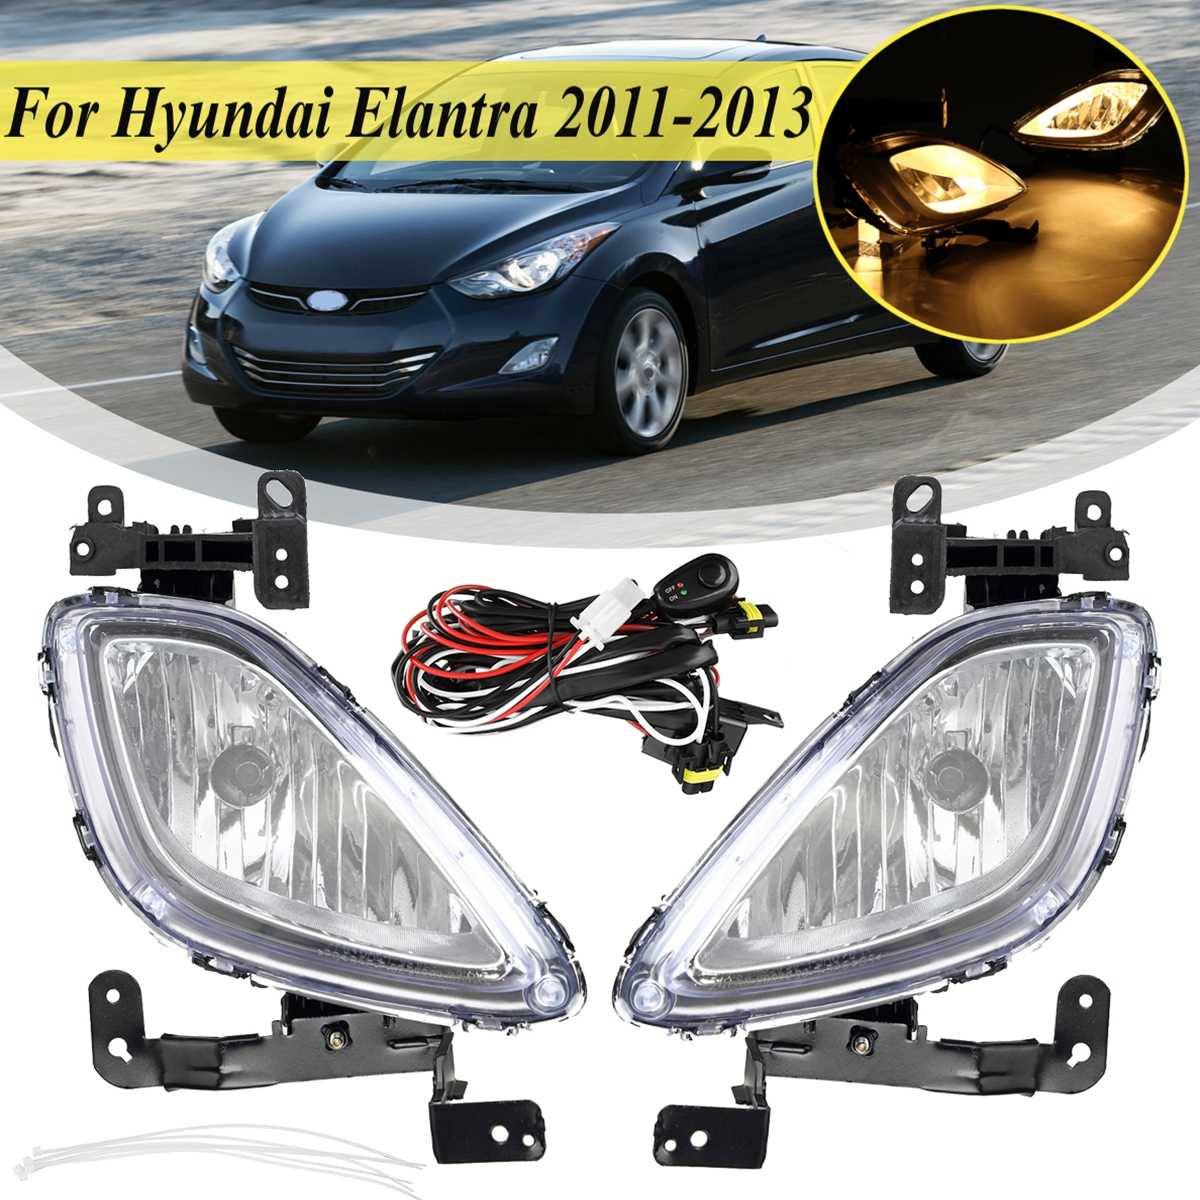 For Original 1 Pair Car Front Fog Light For Hyundai Elantra 2011 2012 2013 Lamp With Wire Bulb  Driving Drl Light Replacement